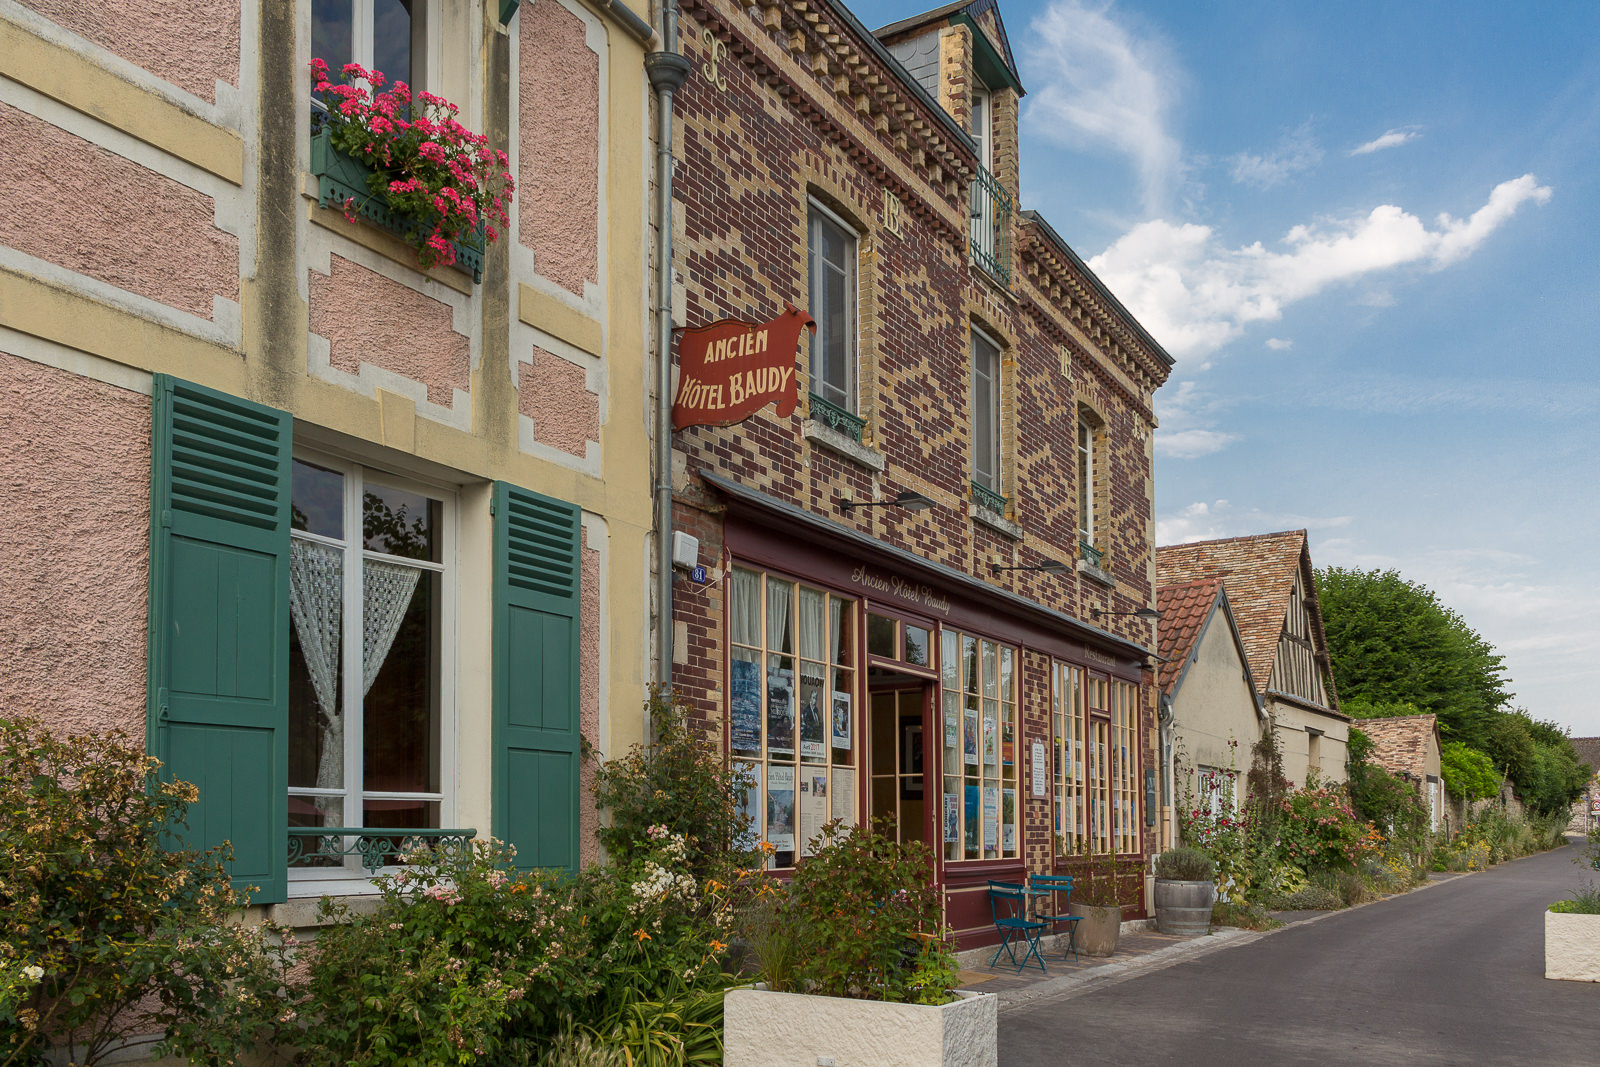 Normandie, Eure, Giverny, Claude Monet, Hotel Restaurant Baudy